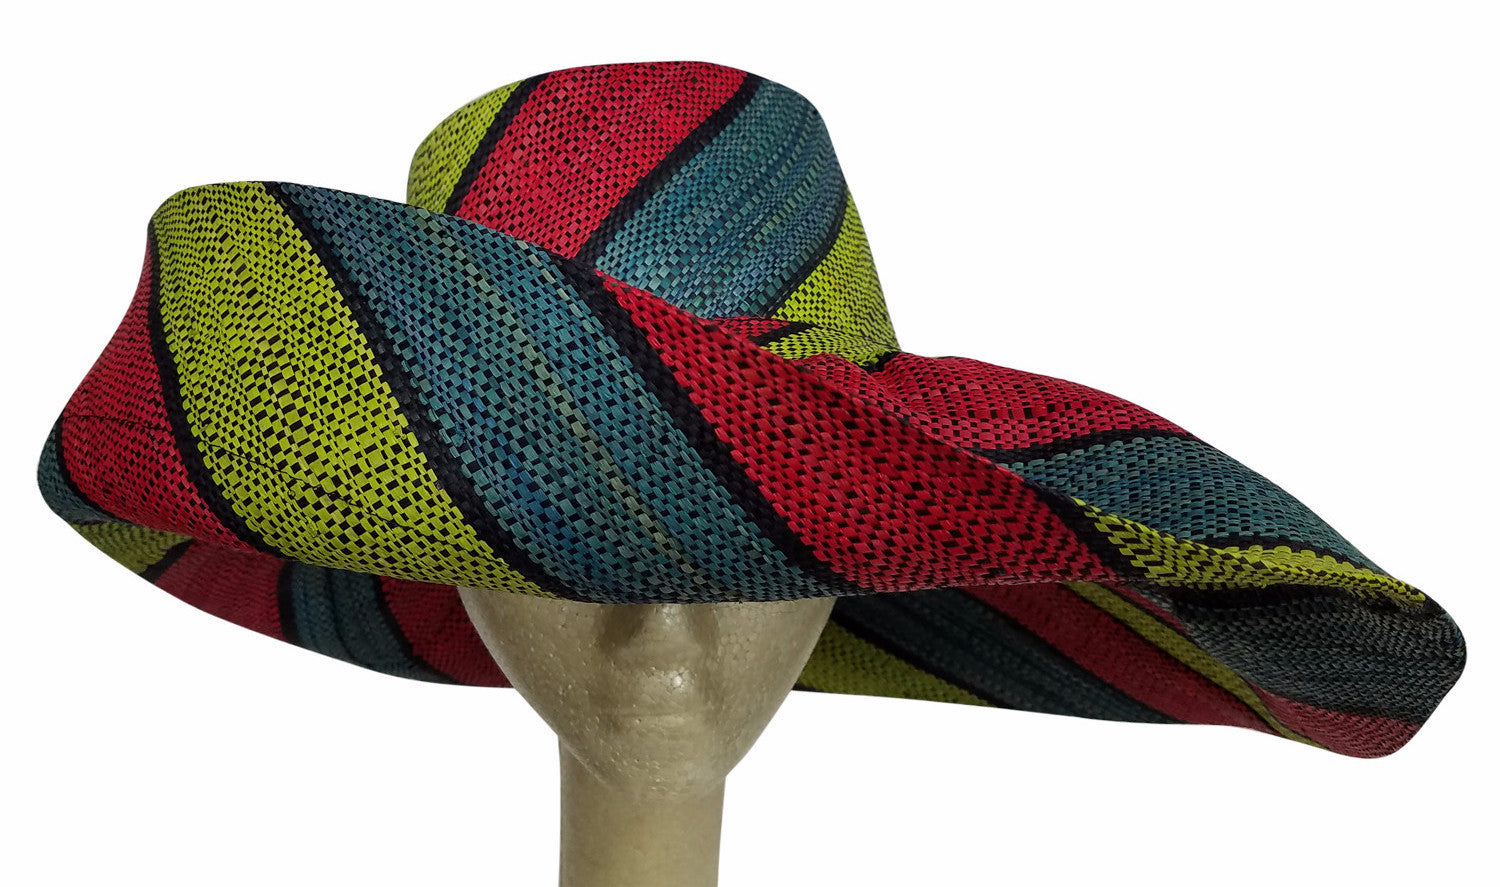 Abidemi: Multicolored Madagascar Big Brim Raffia Sun Hat